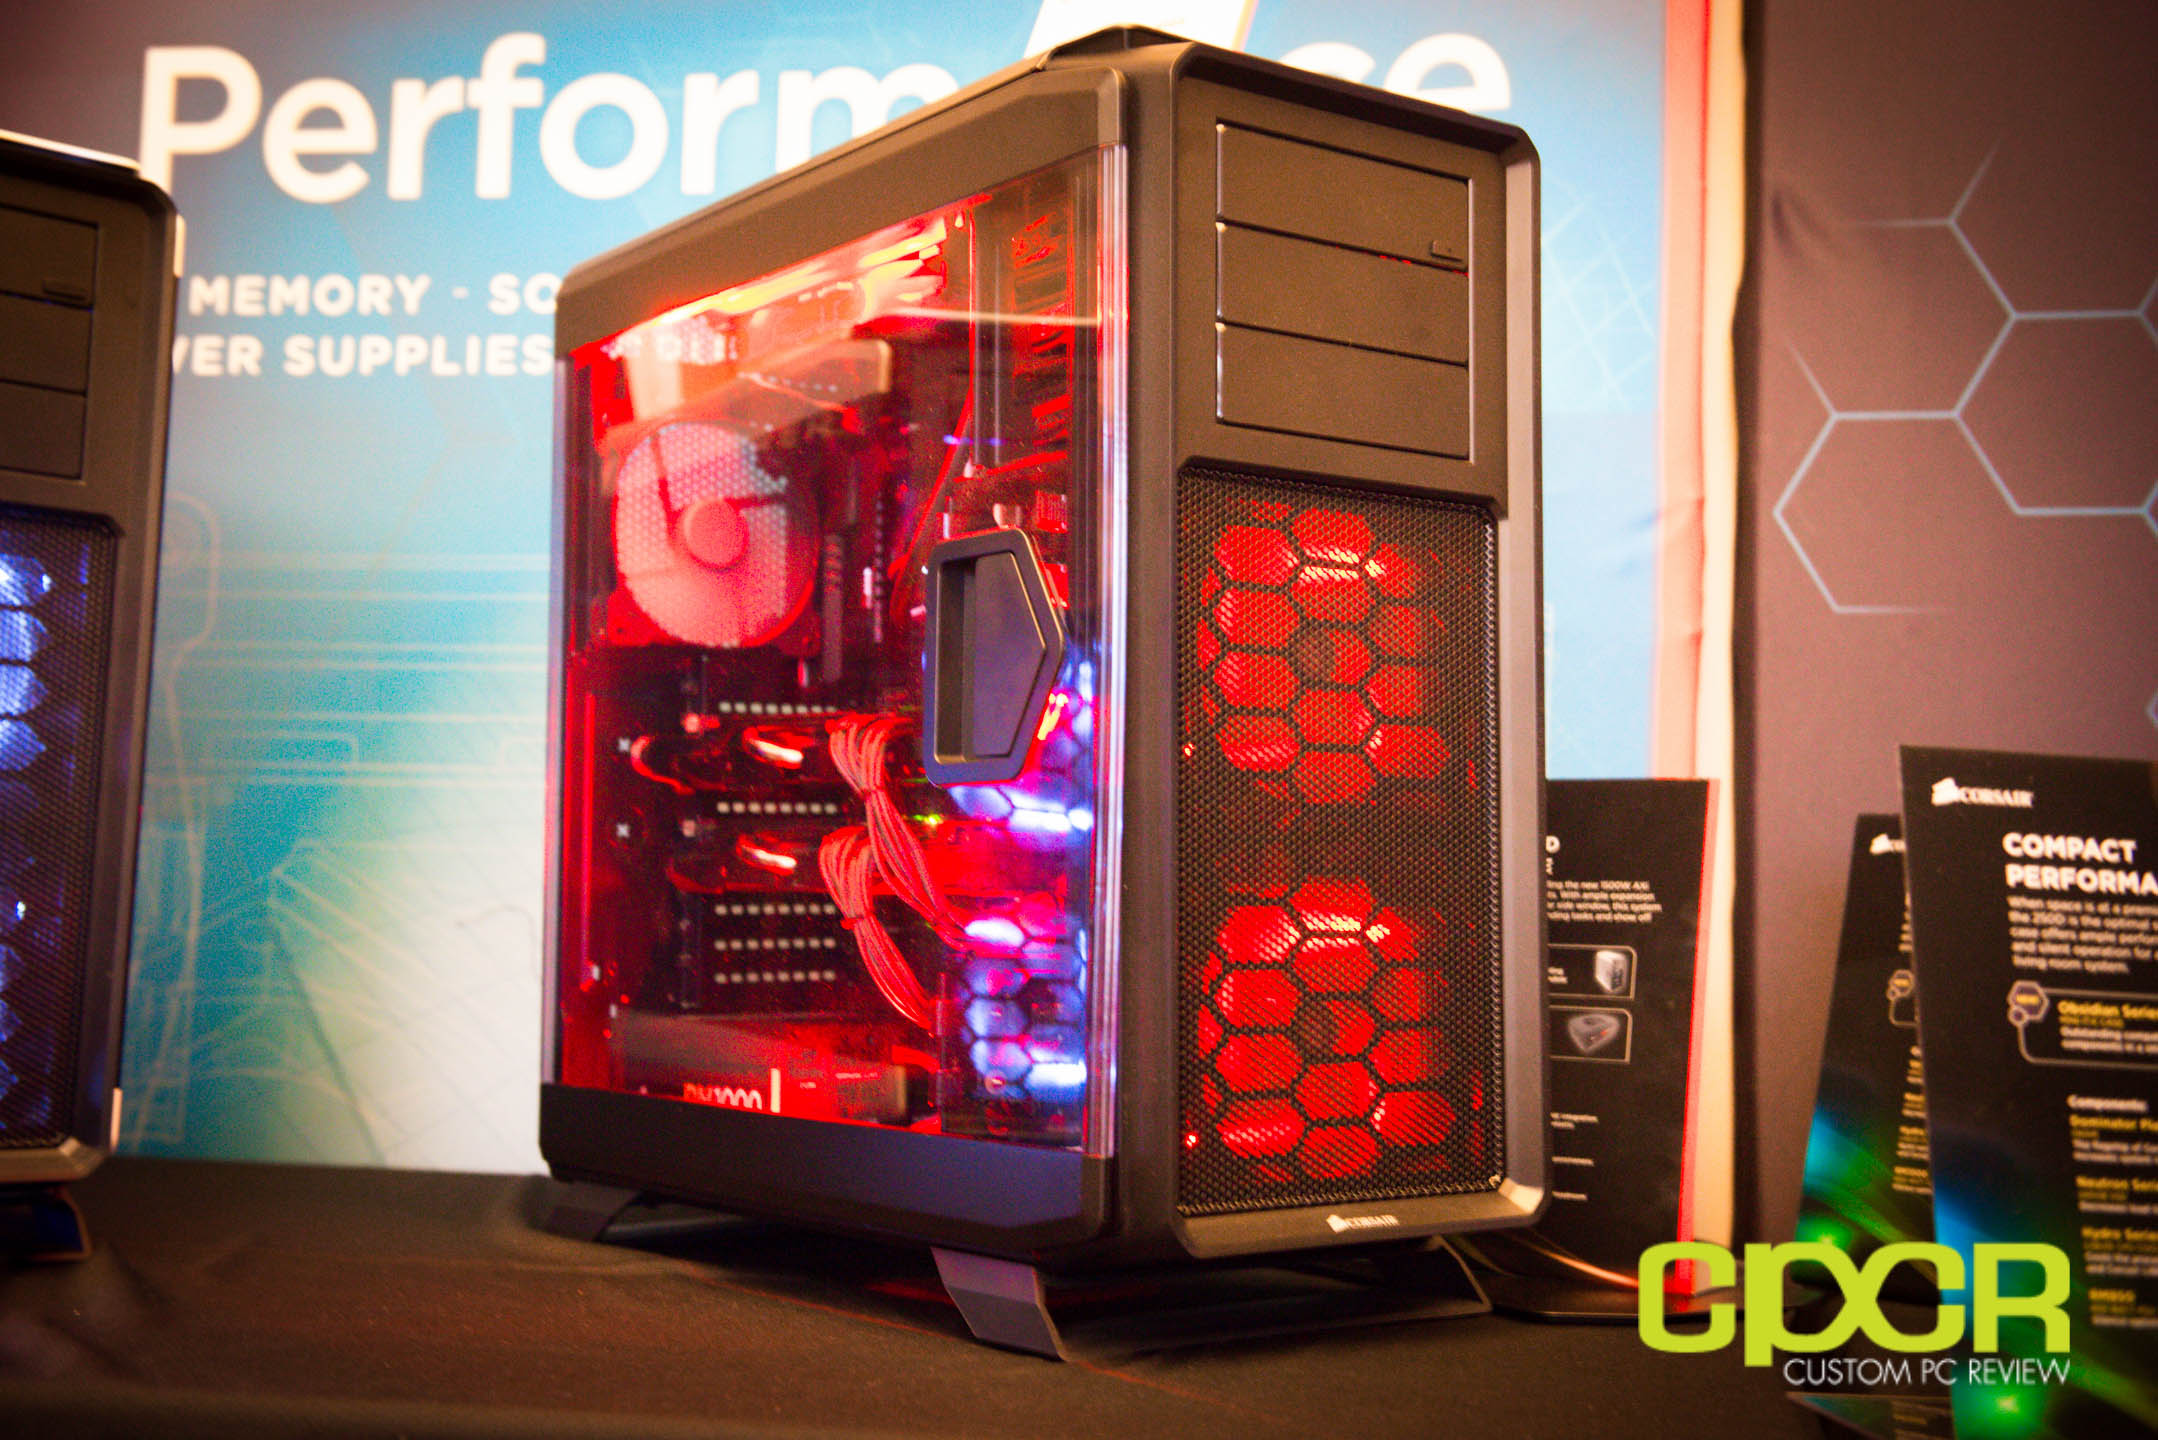 corsair-ces-2014-graphite-230t-730t-obsidian-250d-gaming-peripherals-custom-pc-review-3.jpg